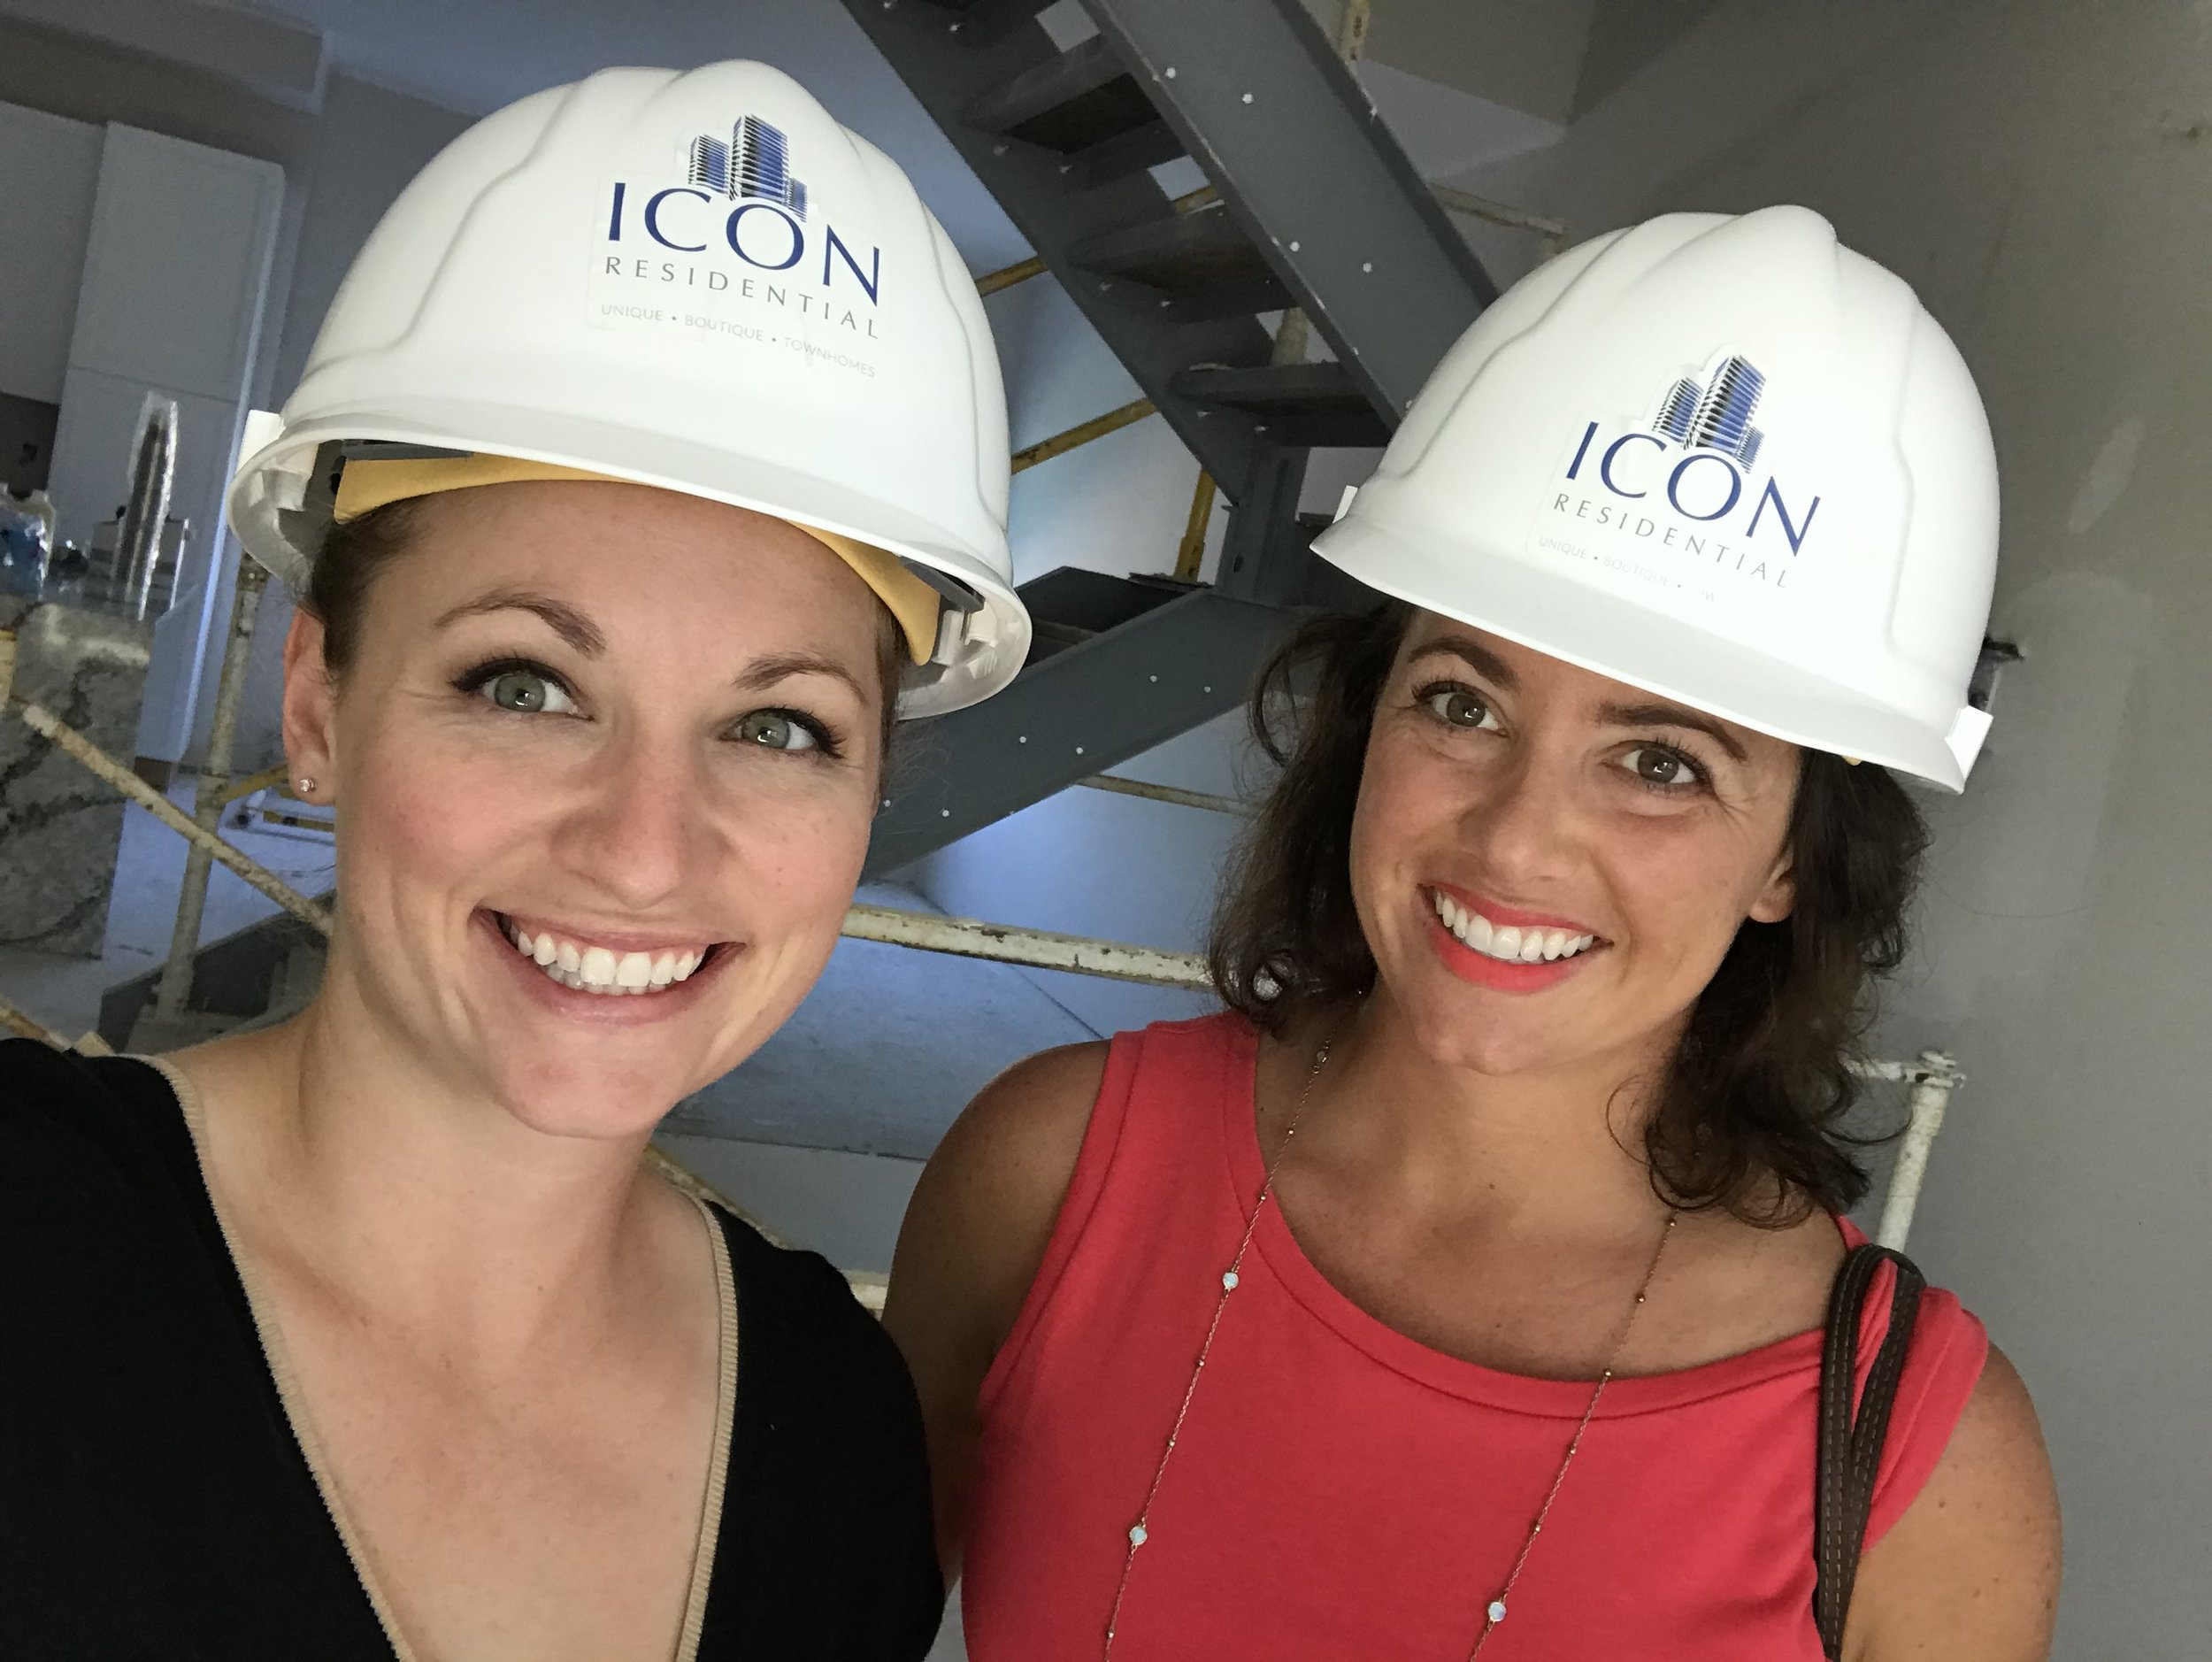 Realtor Extraordinaire & Marketing Guru - Hard hats not included!